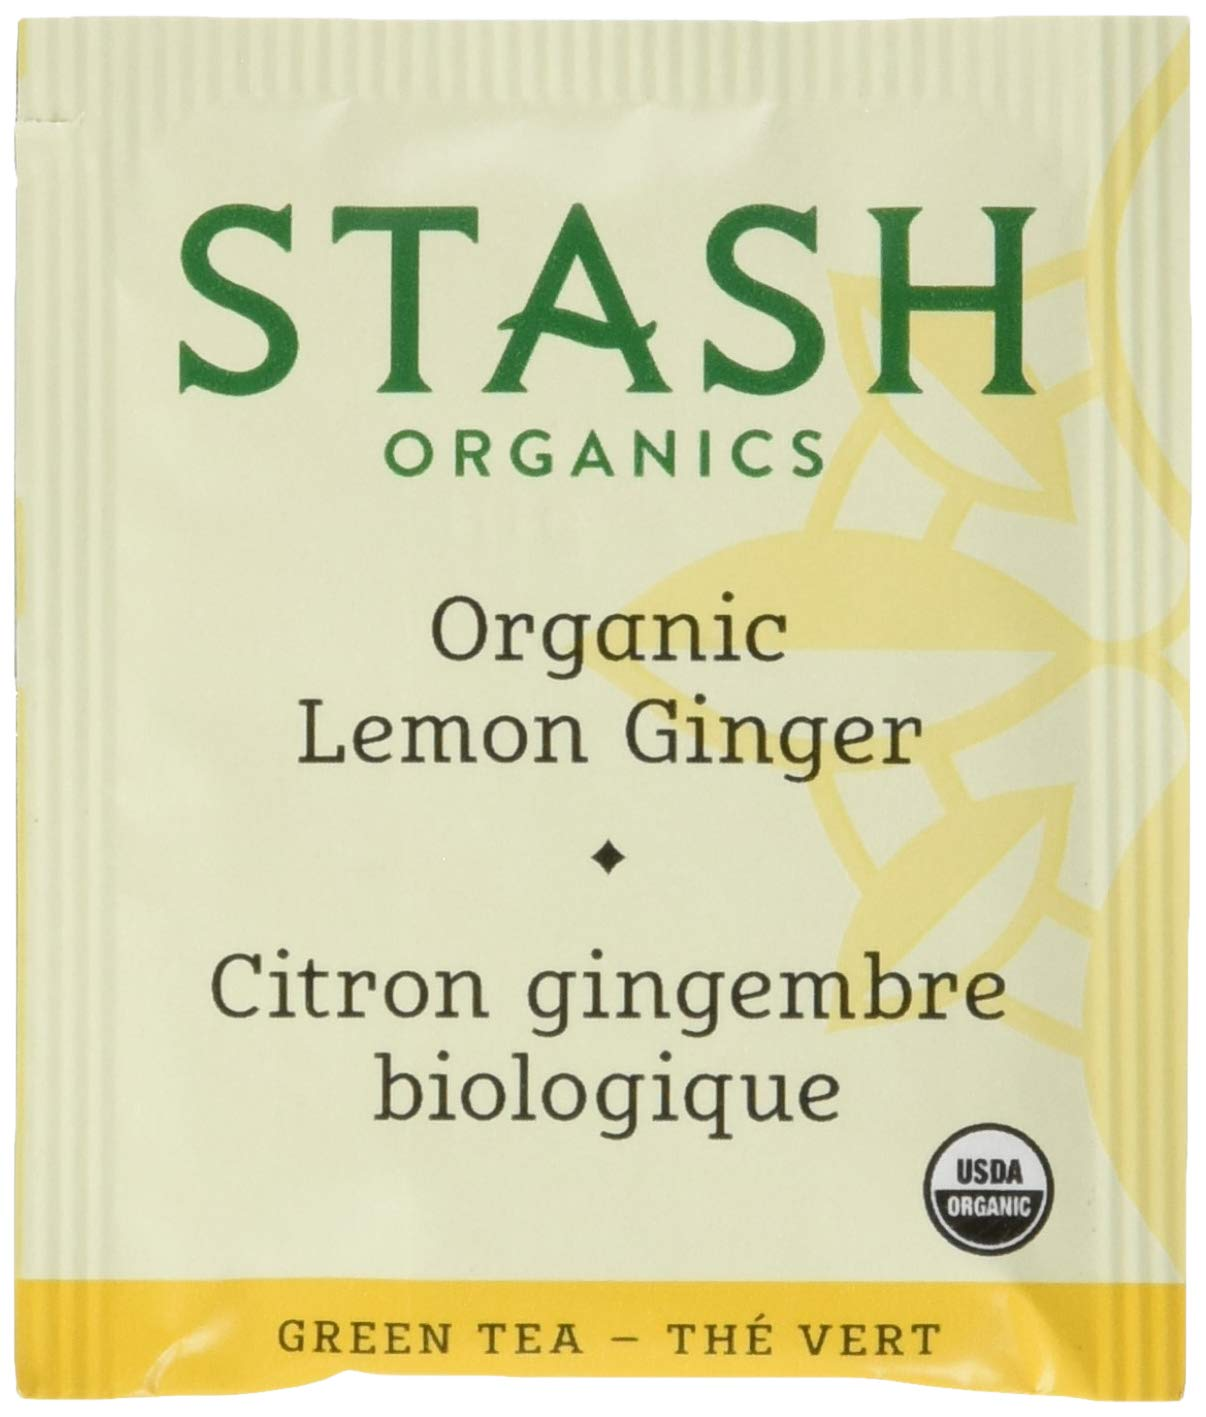 Stash Tea Organic Green Tea Lemon Ginger, 100 Count Tea Bags in Foil (packaging may vary) Individual Green Tea Bags for Use in Teapots Mugs or Cups, Brew Hot Tea or Iced Tea by Stash Tea